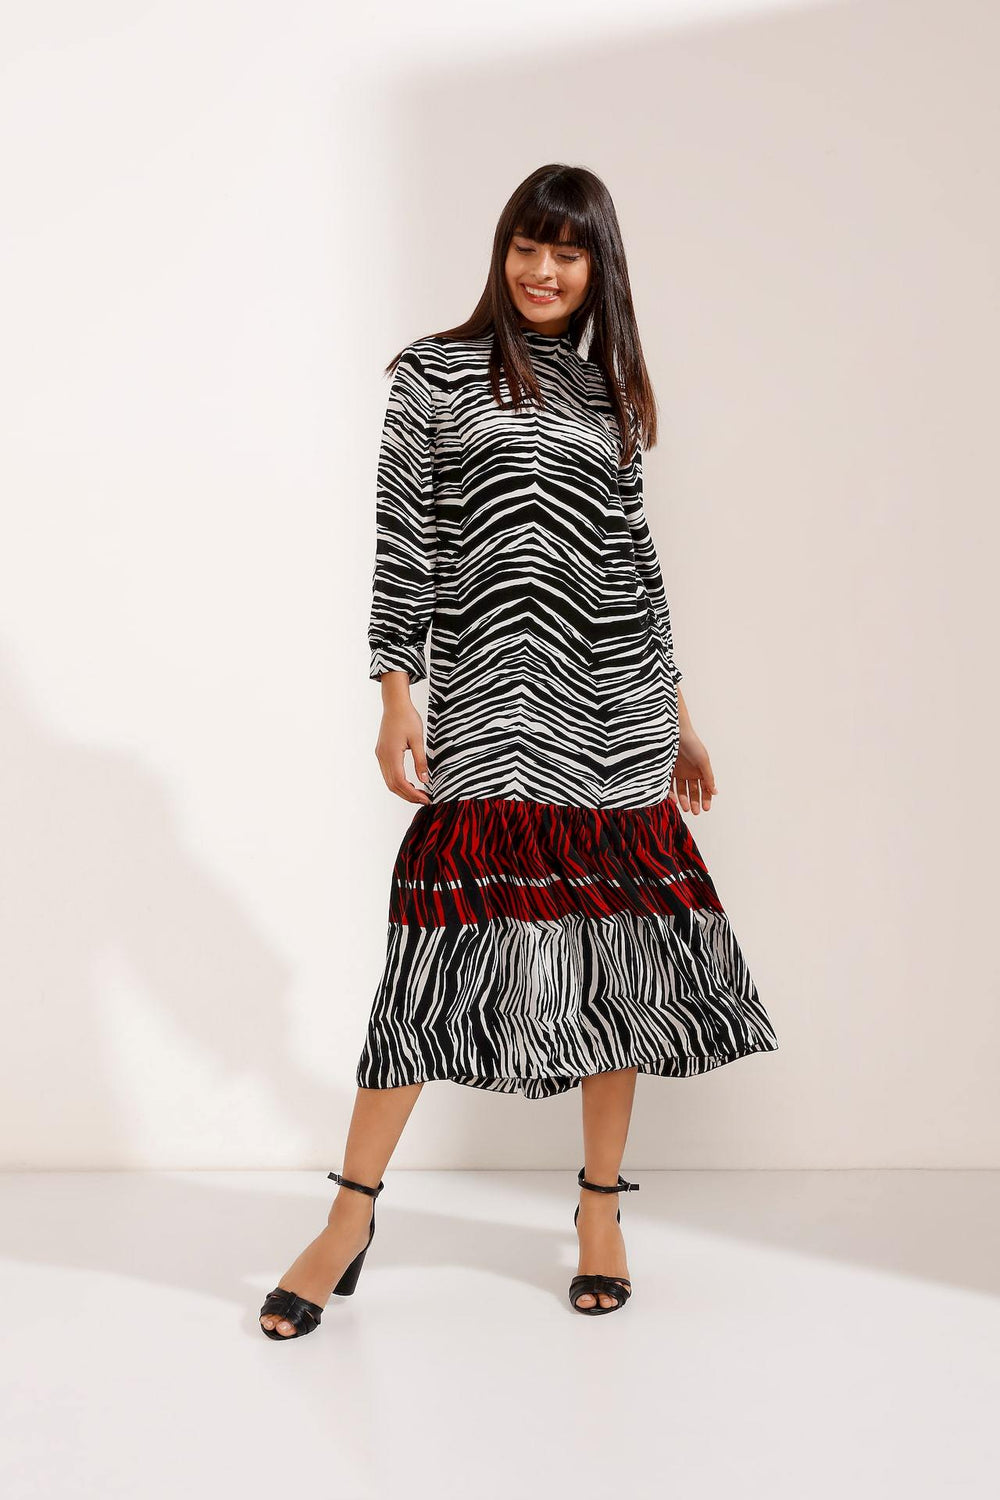 Store WF Multi Coloured Zebra Long Dress Modest Midi Zebra Print Dress with Long Sleeves in 100% Polyester